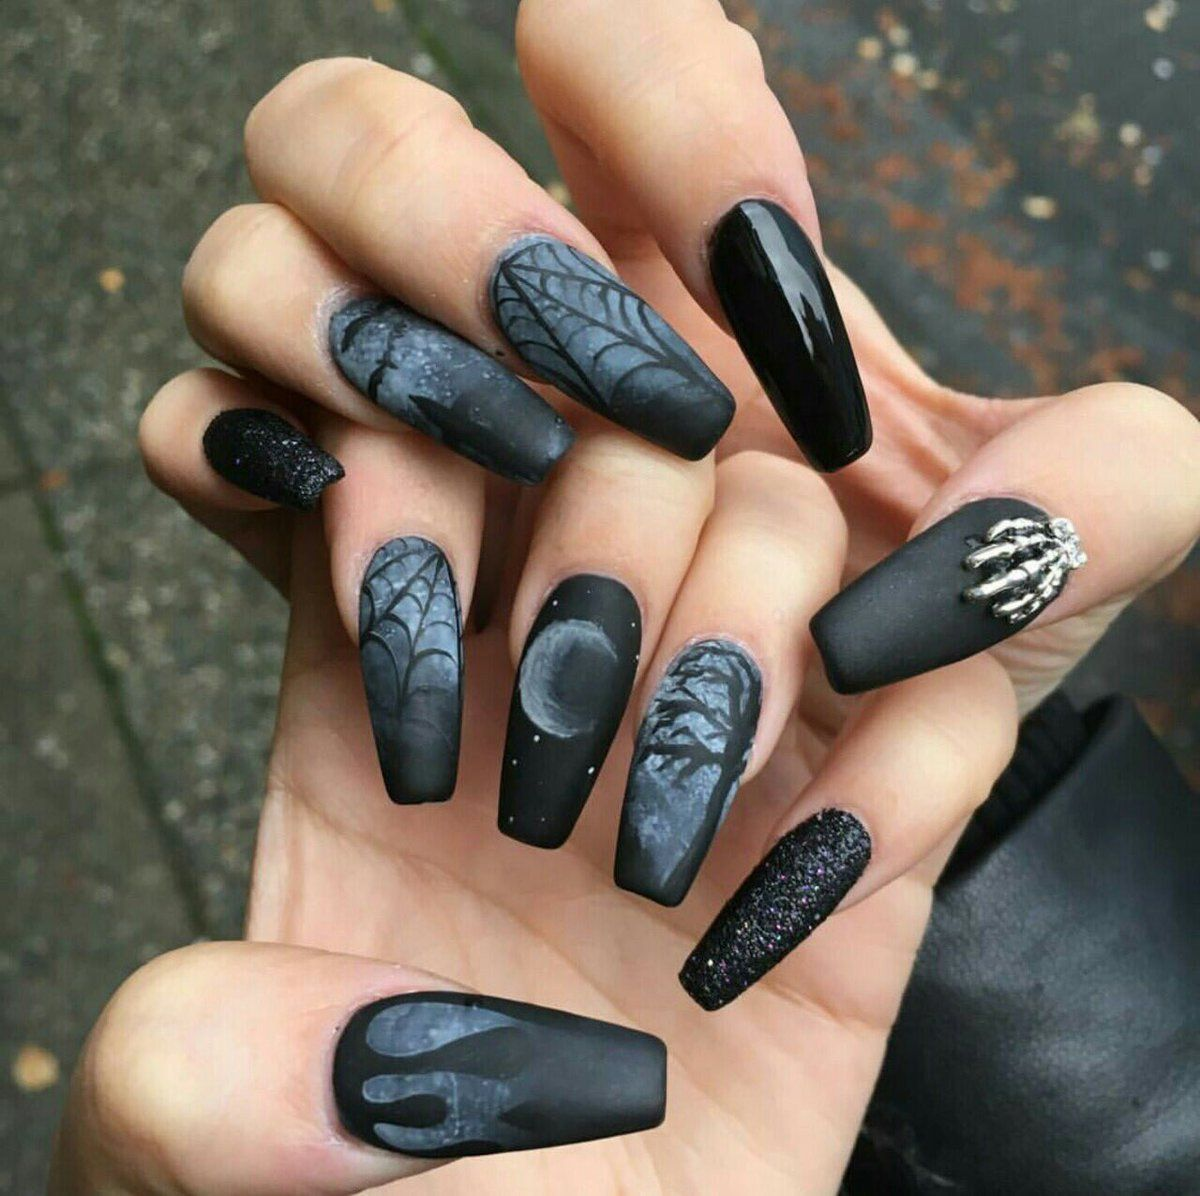 Black matte and glossy nails with goth decoration - 30 Gorgeous Nails Ideas You Have To Try Beauty/Makeup Pinterest